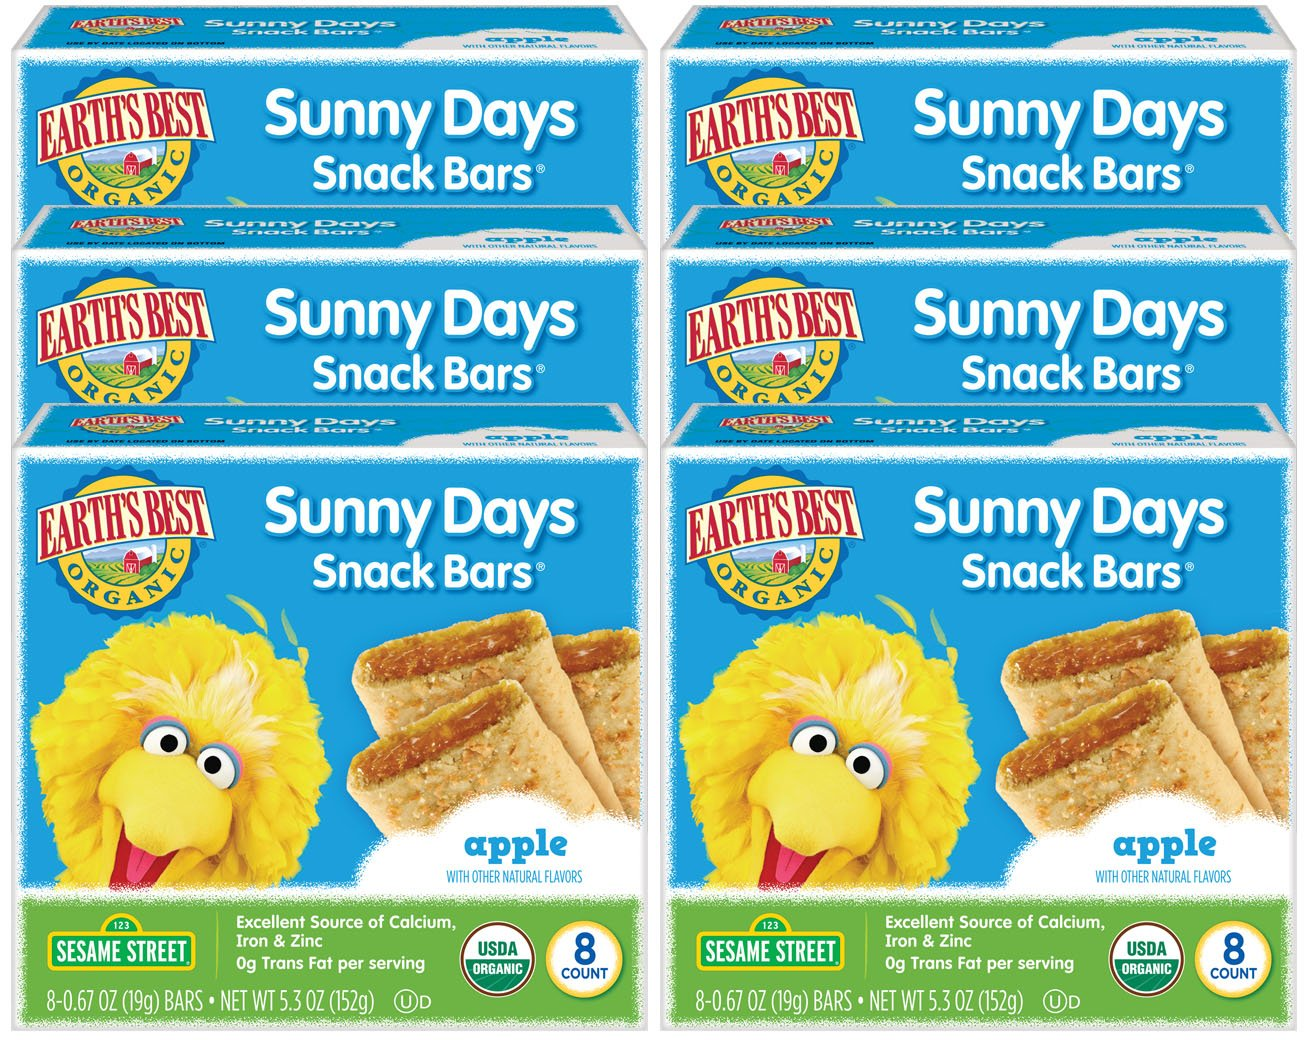 Earth's Best Organic Sunny Day Toddler Snack Bars with Cereal Crust, Made With Real Apples - 8 Count (Pack of 6) by Earth's Best (Image #7)